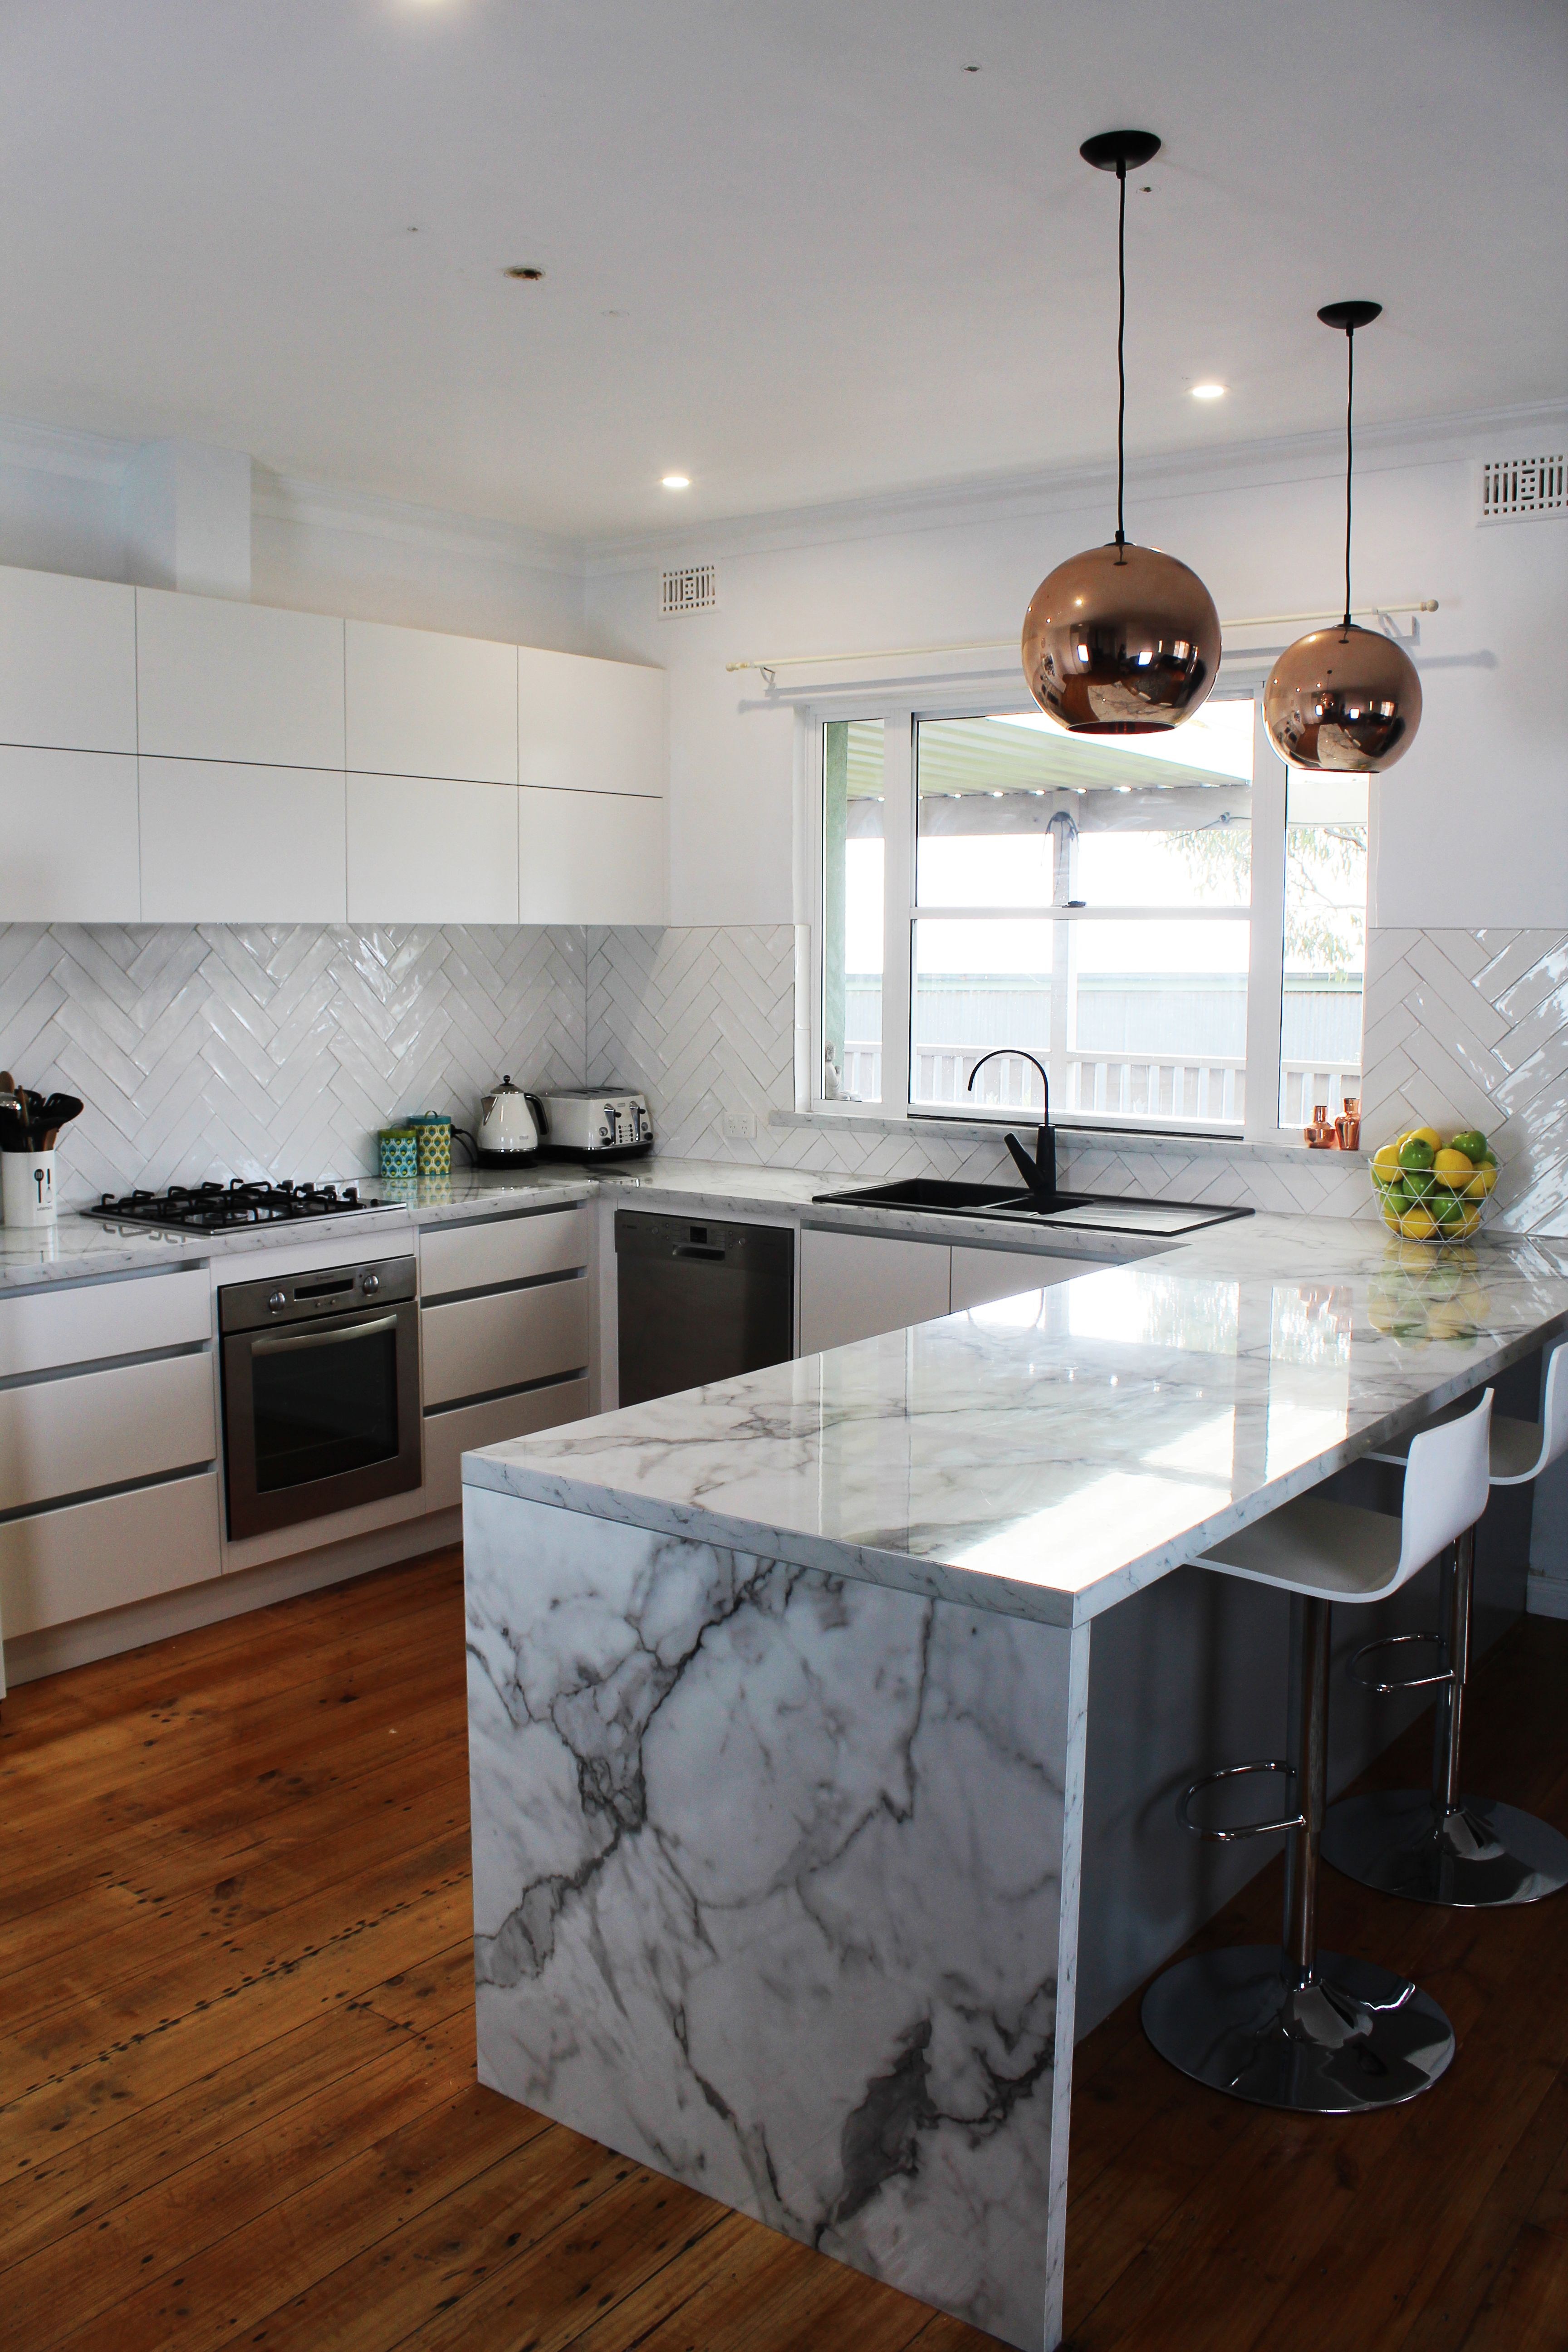 of a for young countertop gettabu white countertops carrara french marble cost sale bust lady century com